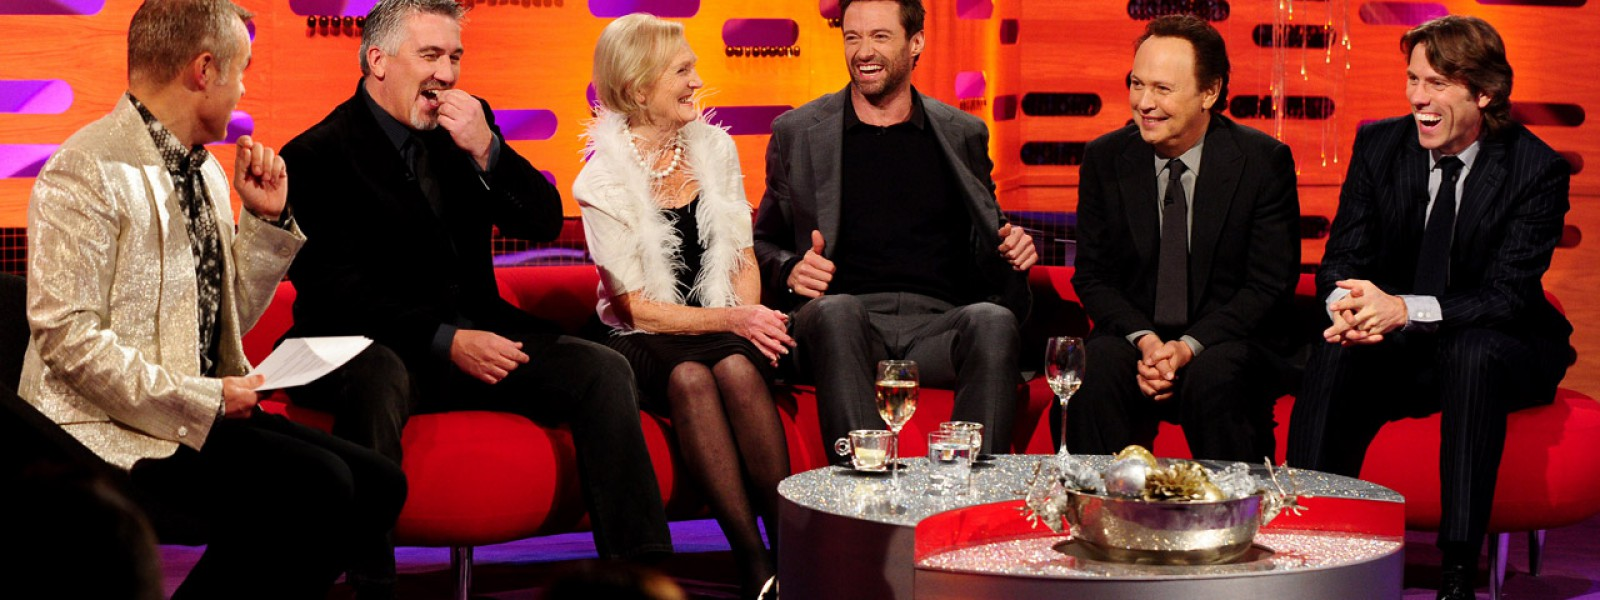 grahamnorton_photo_s12_e10_09